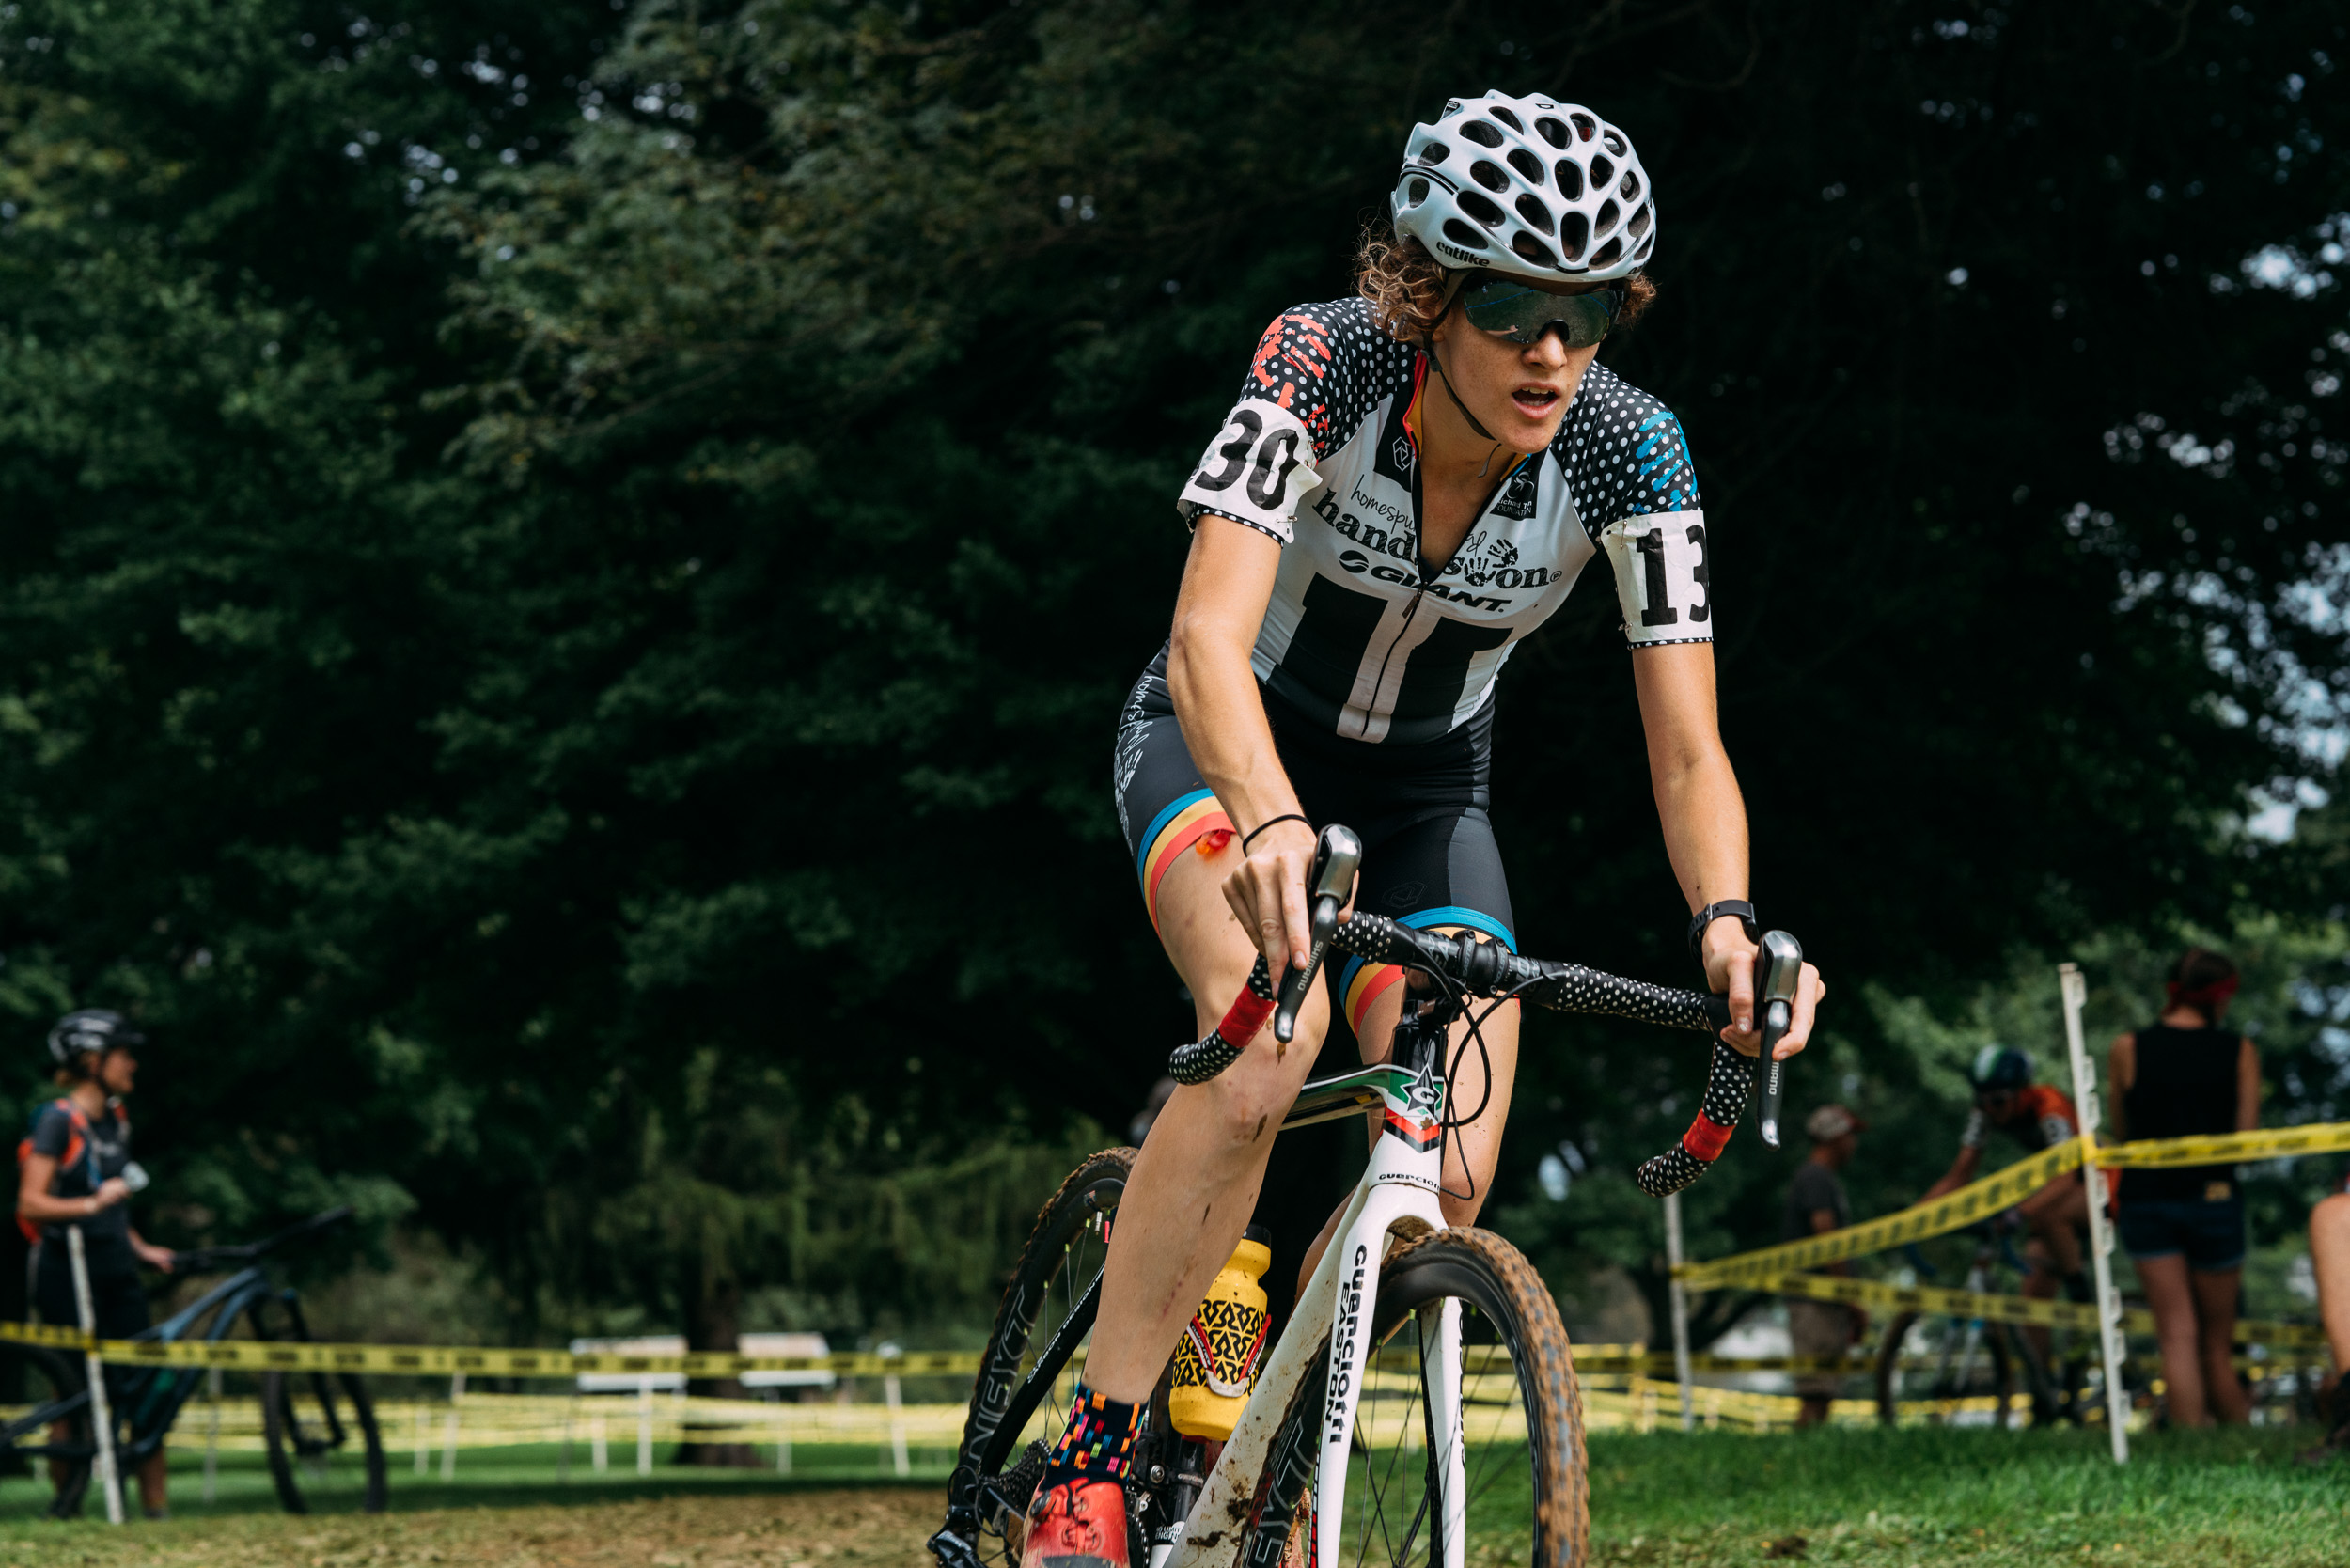 photo-rhetoric-to-be-determined-nittany-cyclocross-1094.jpg